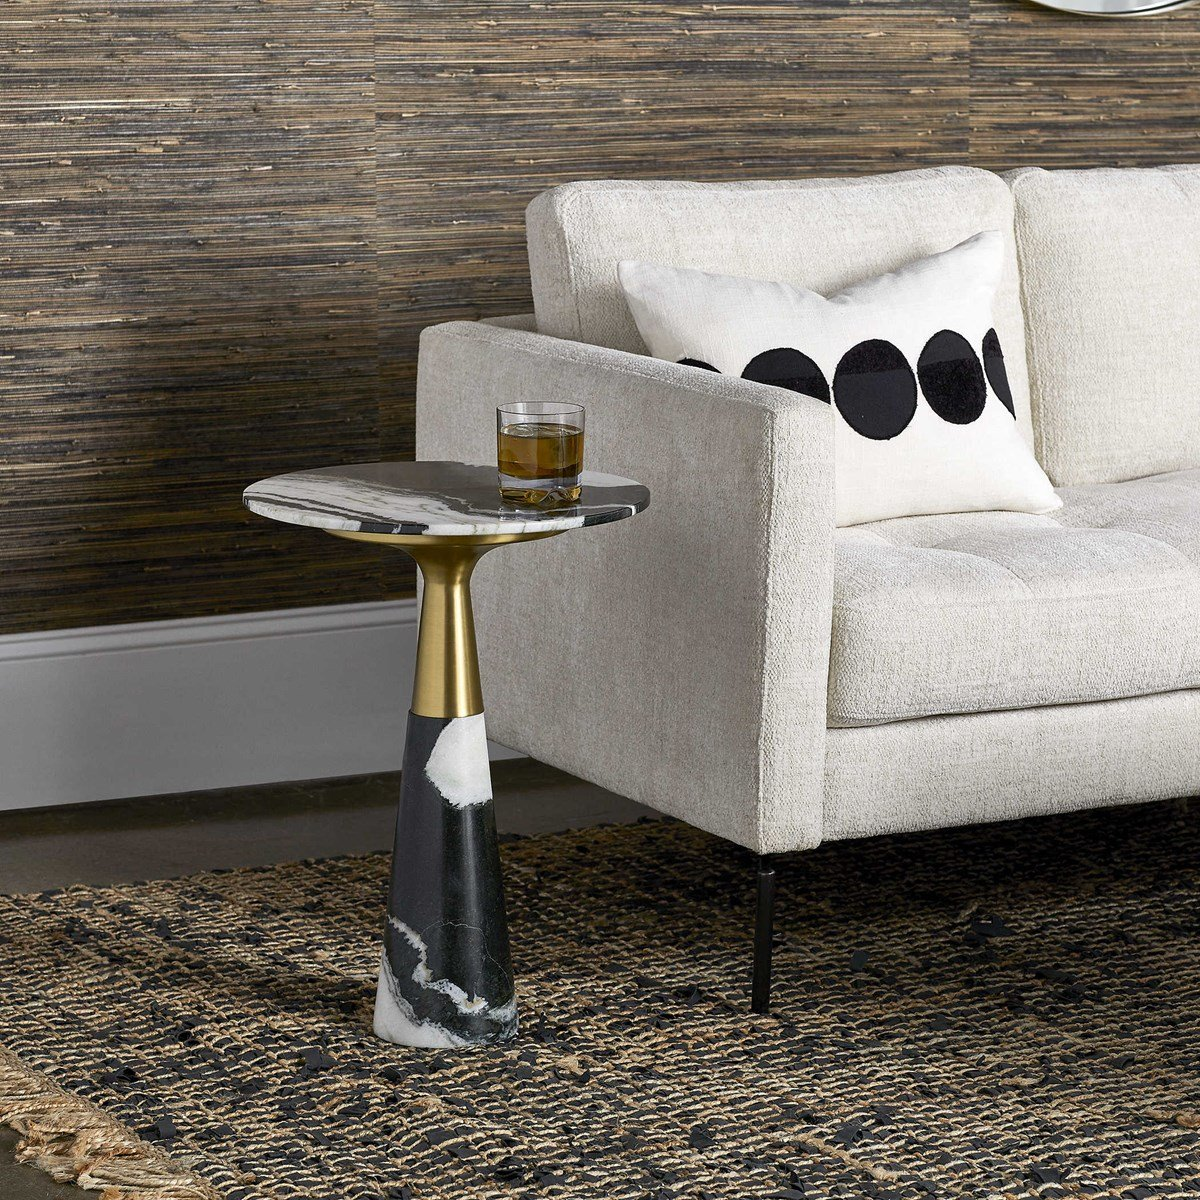 Mixed marble and brass looks chic in this retro-modern side table